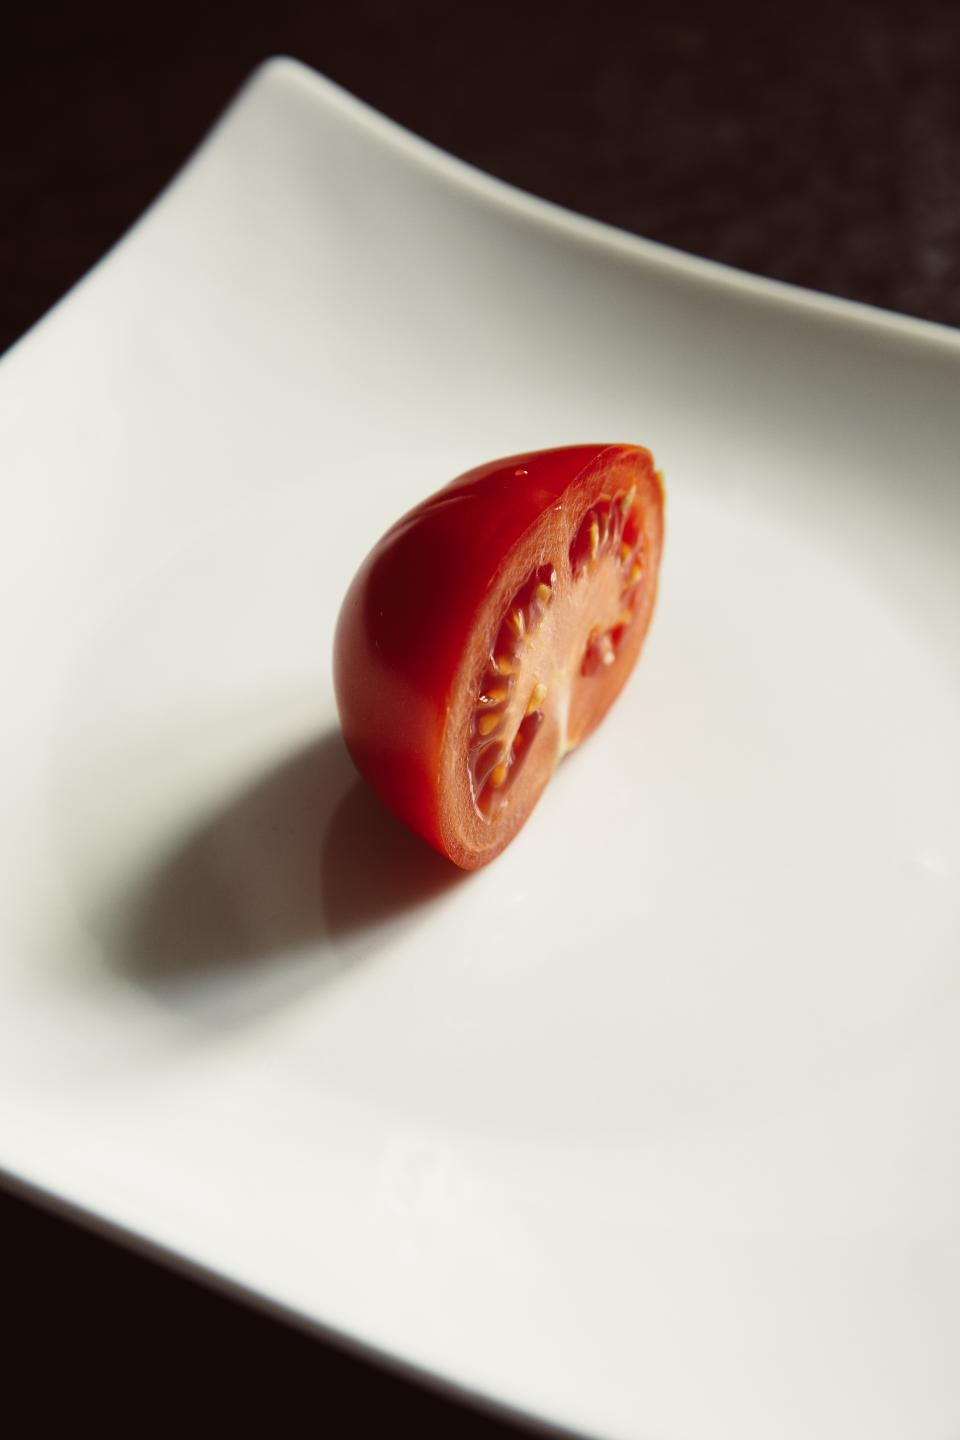 white plate red tomato food vegetable fruit